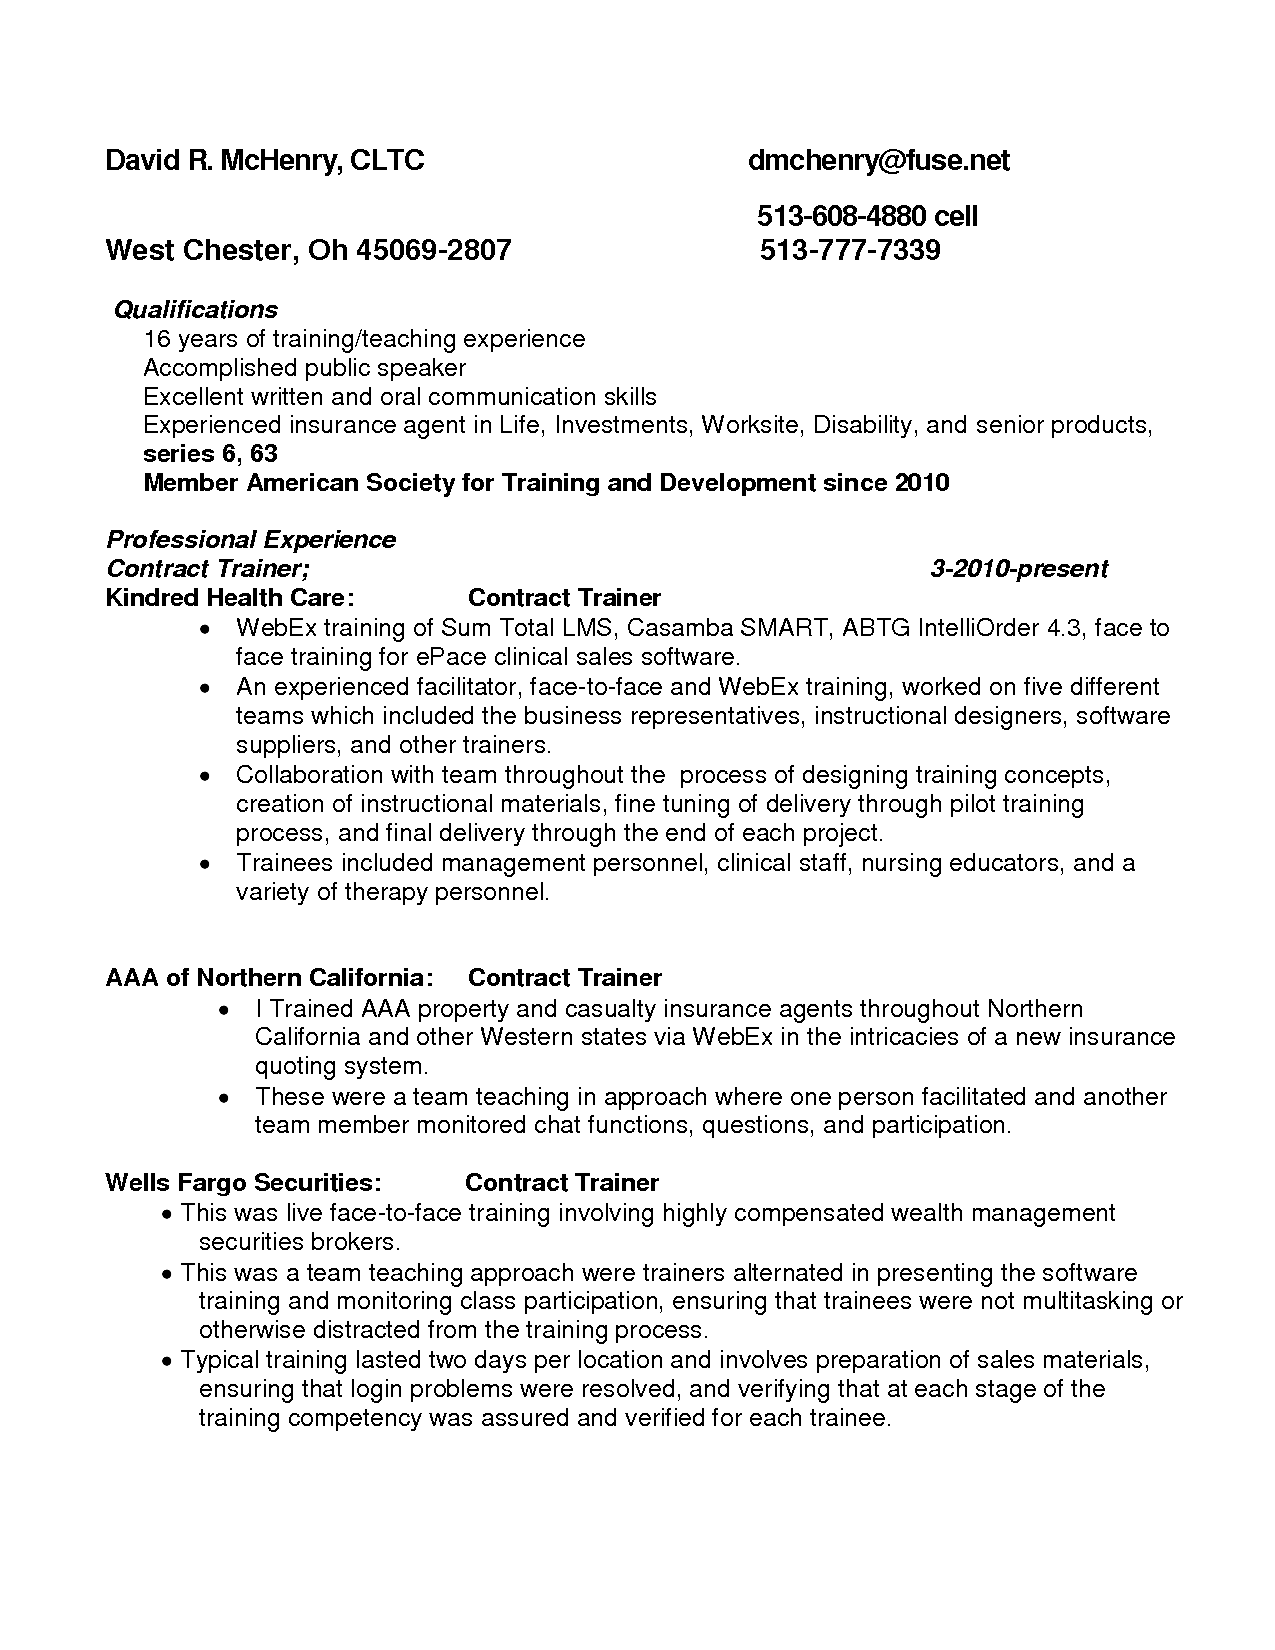 Insurance Agent Resume Examples - http://www.jobresume.website ...